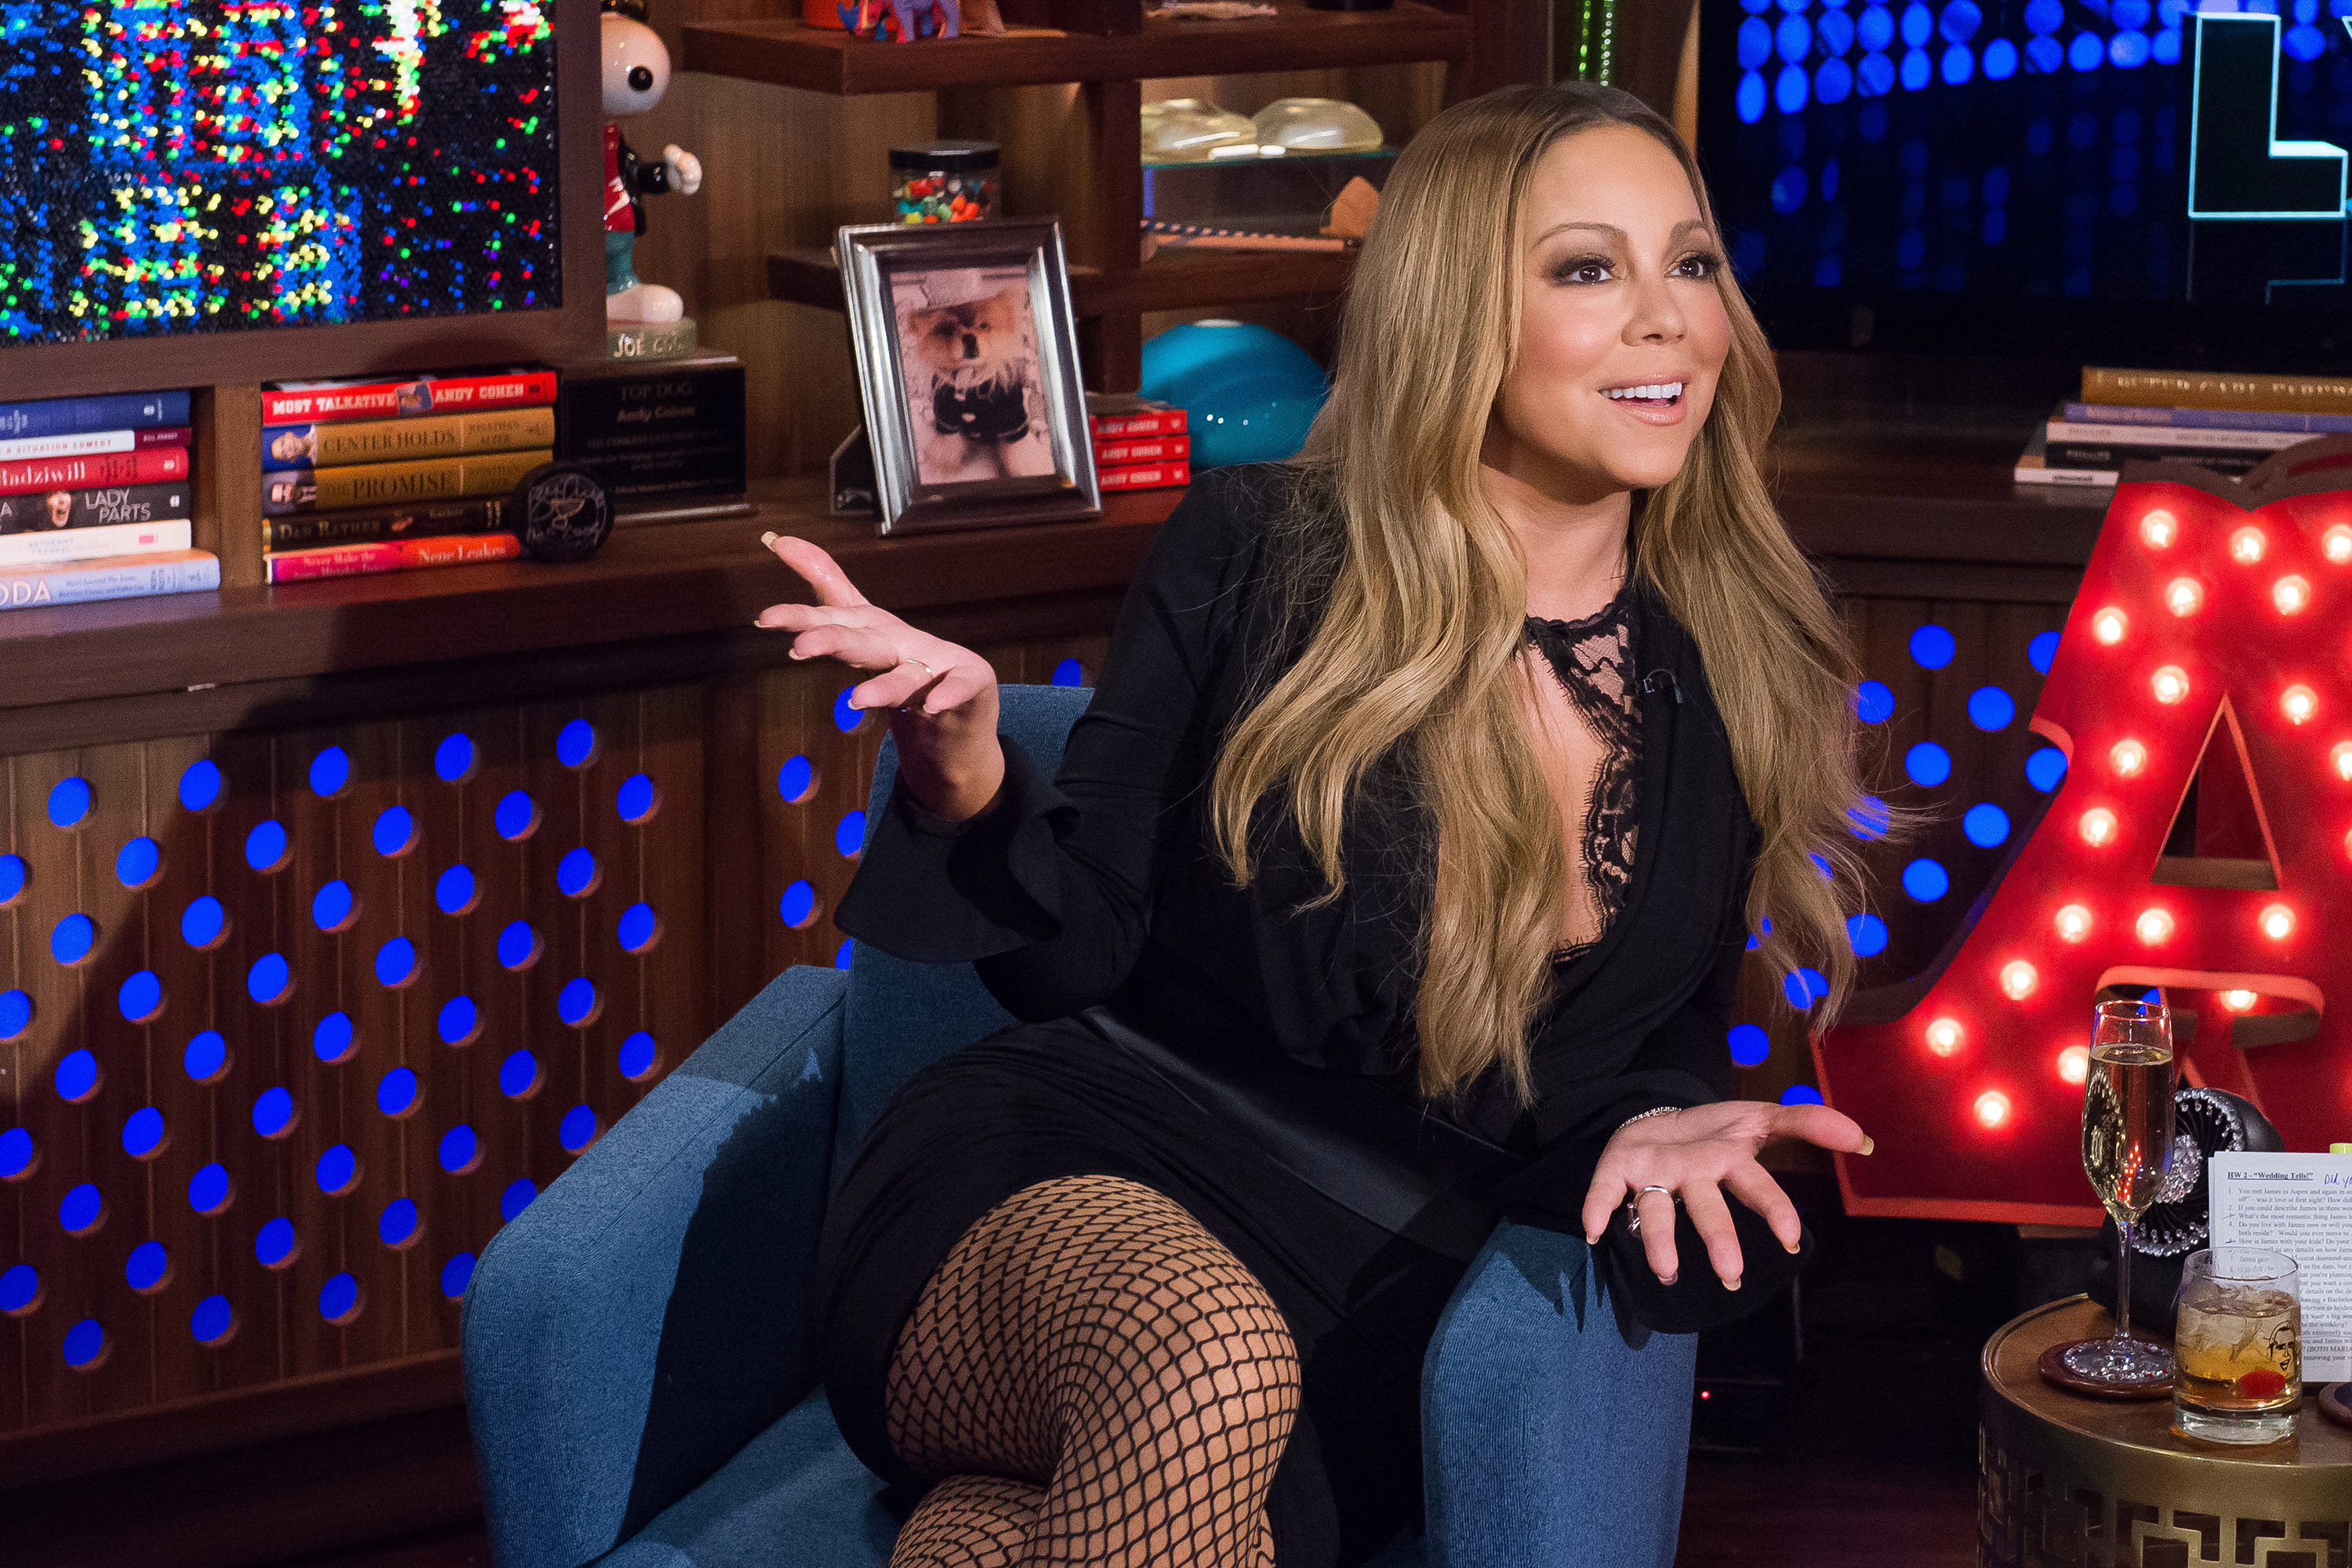 WATCH WHAT HAPPENS LIVE -- Pictured: Mariah Carey